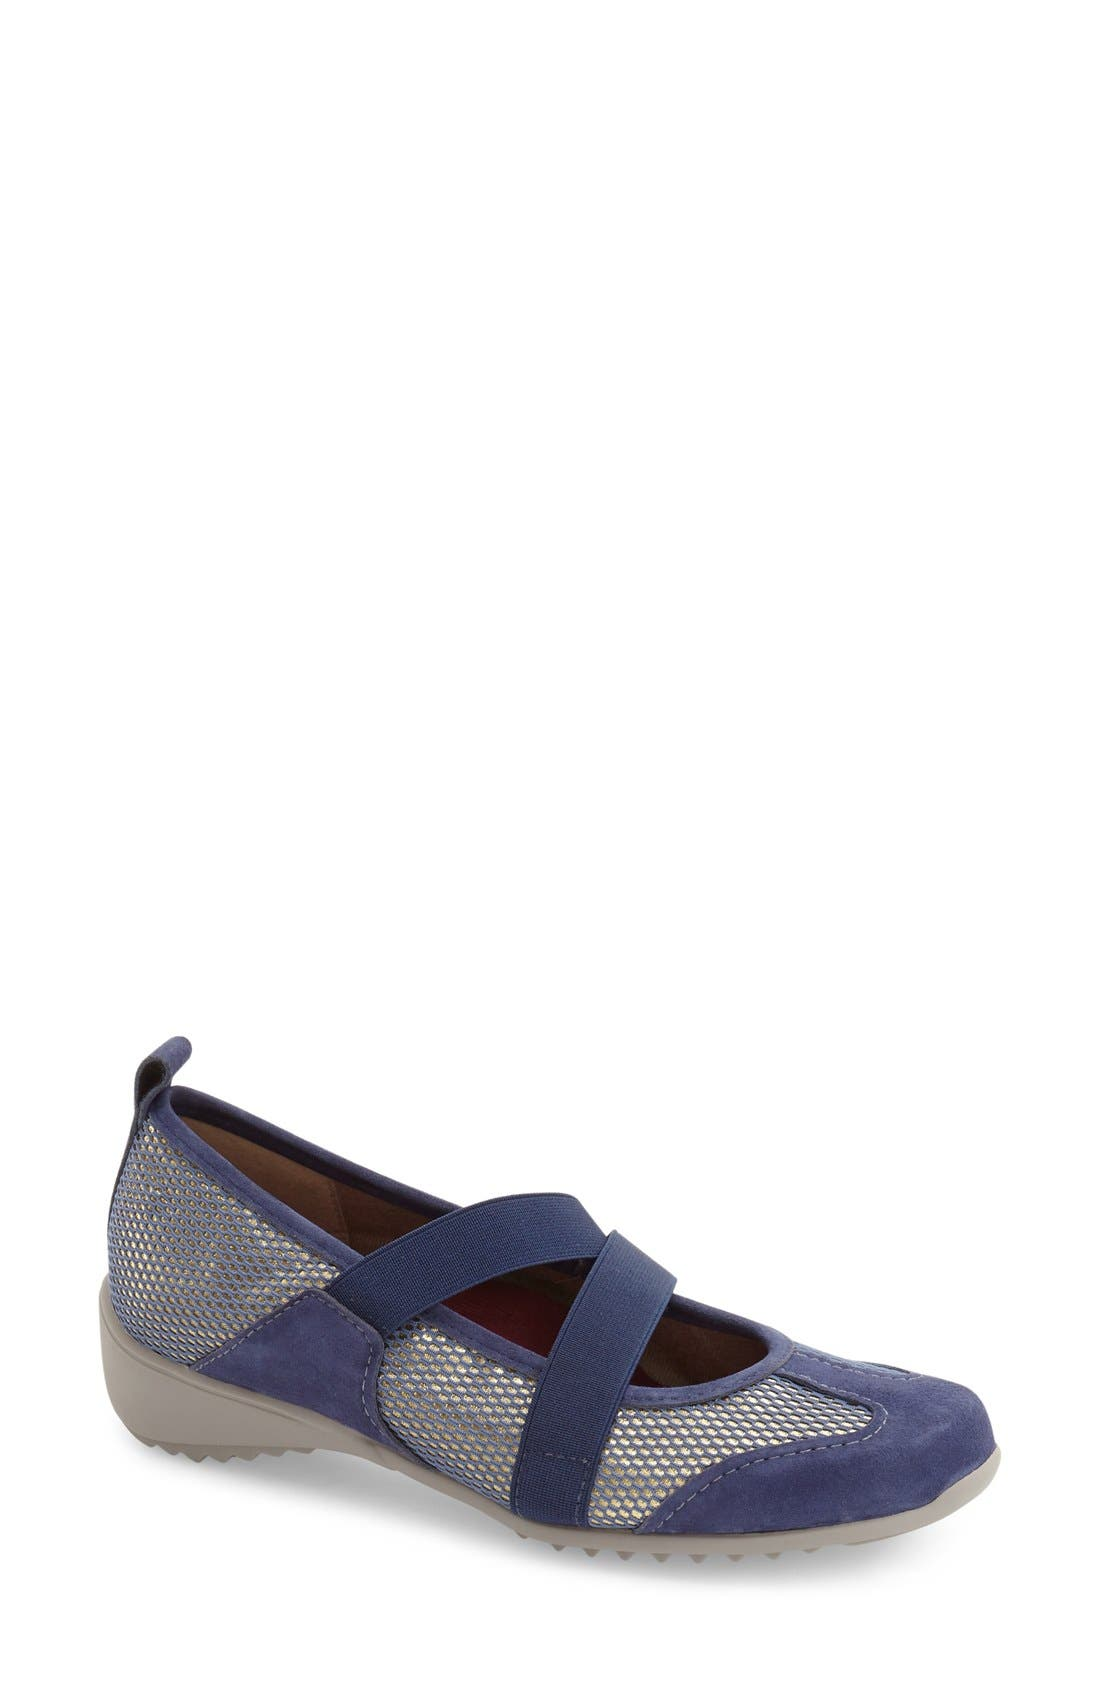 'Zip' Mary Jane Flat,                             Main thumbnail 1, color,                             Blue Combo